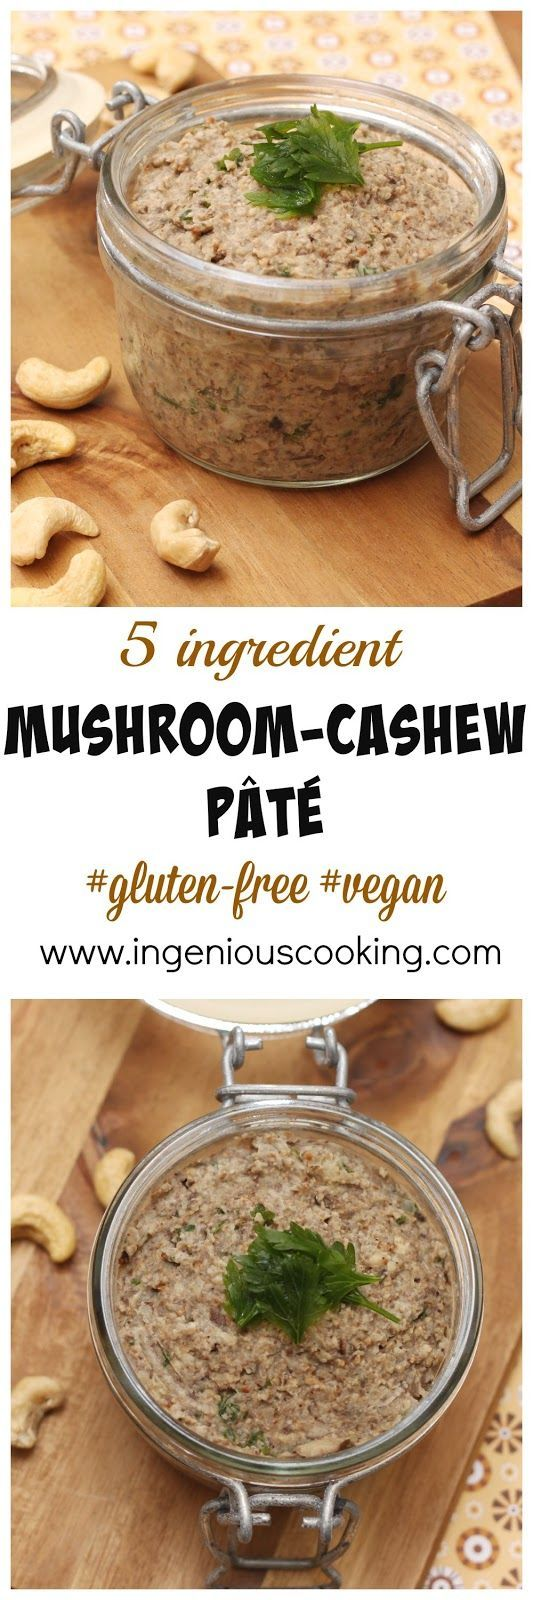 Mushroom-cashew (almond?) pâté - simple vegan spread made with only 5 ingredients in under 20 minutes!